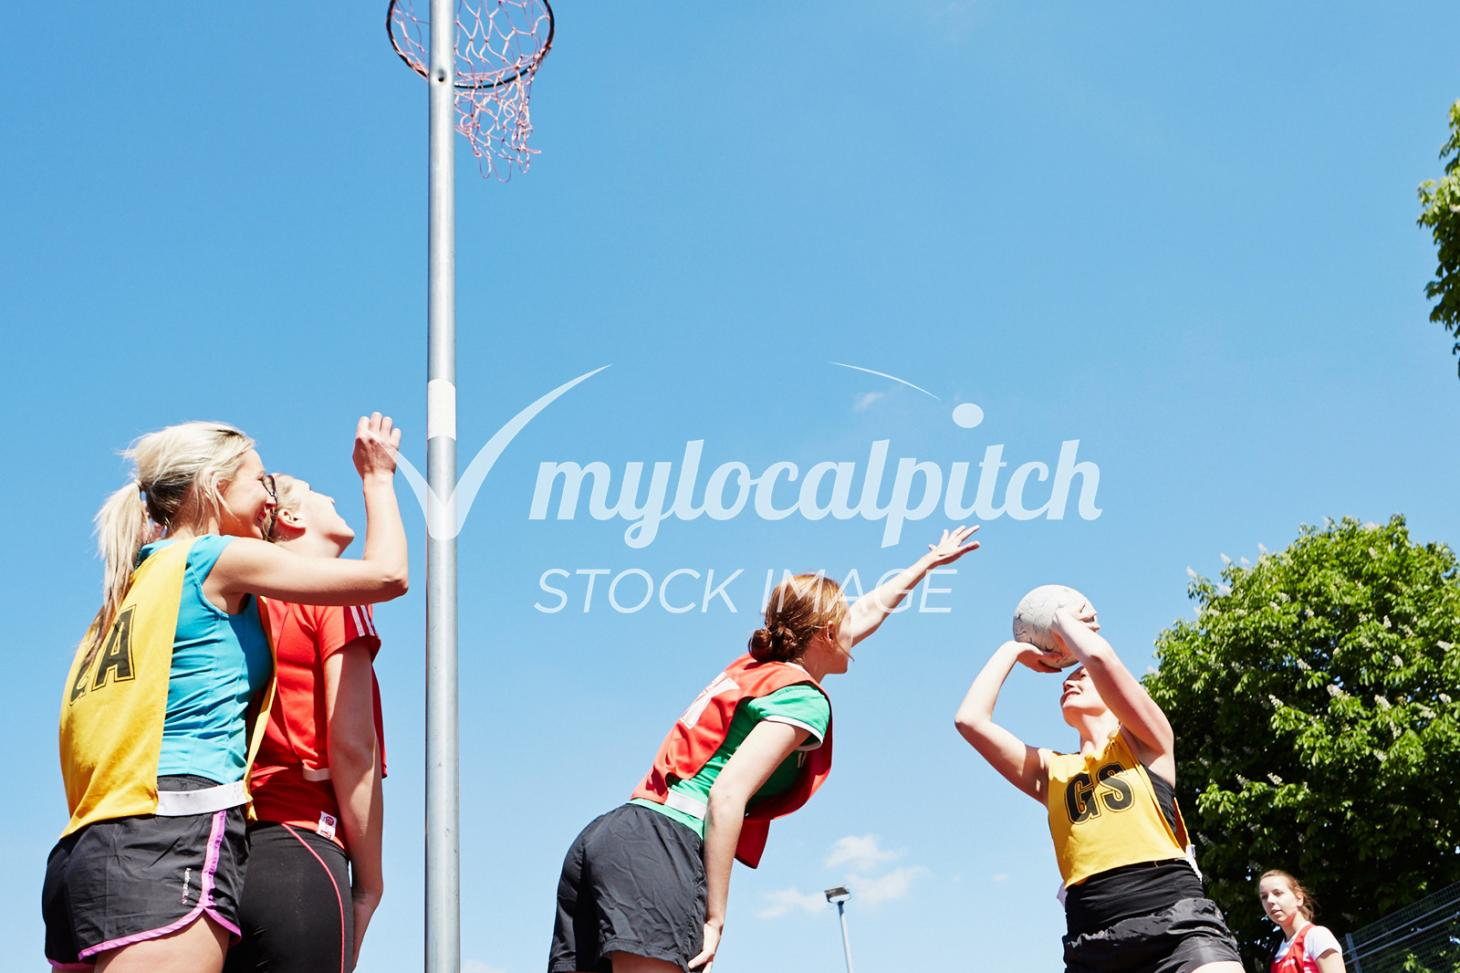 Challney High School for Girls Outdoor | Concrete netball court